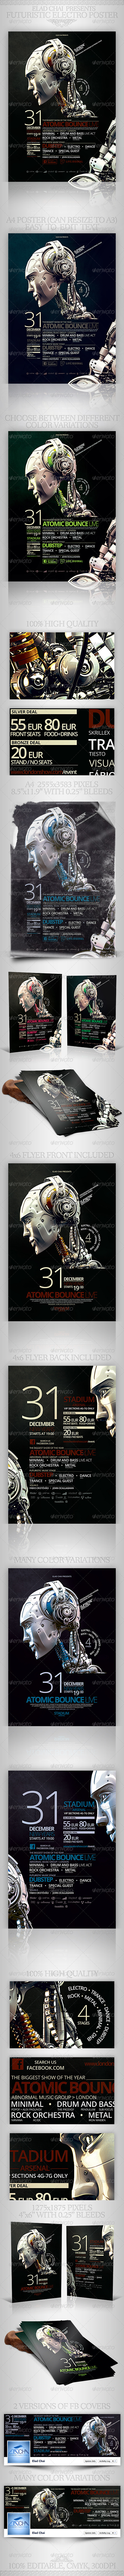 GraphicRiver Futuristic Electro Typography Flyer Poster 6355518